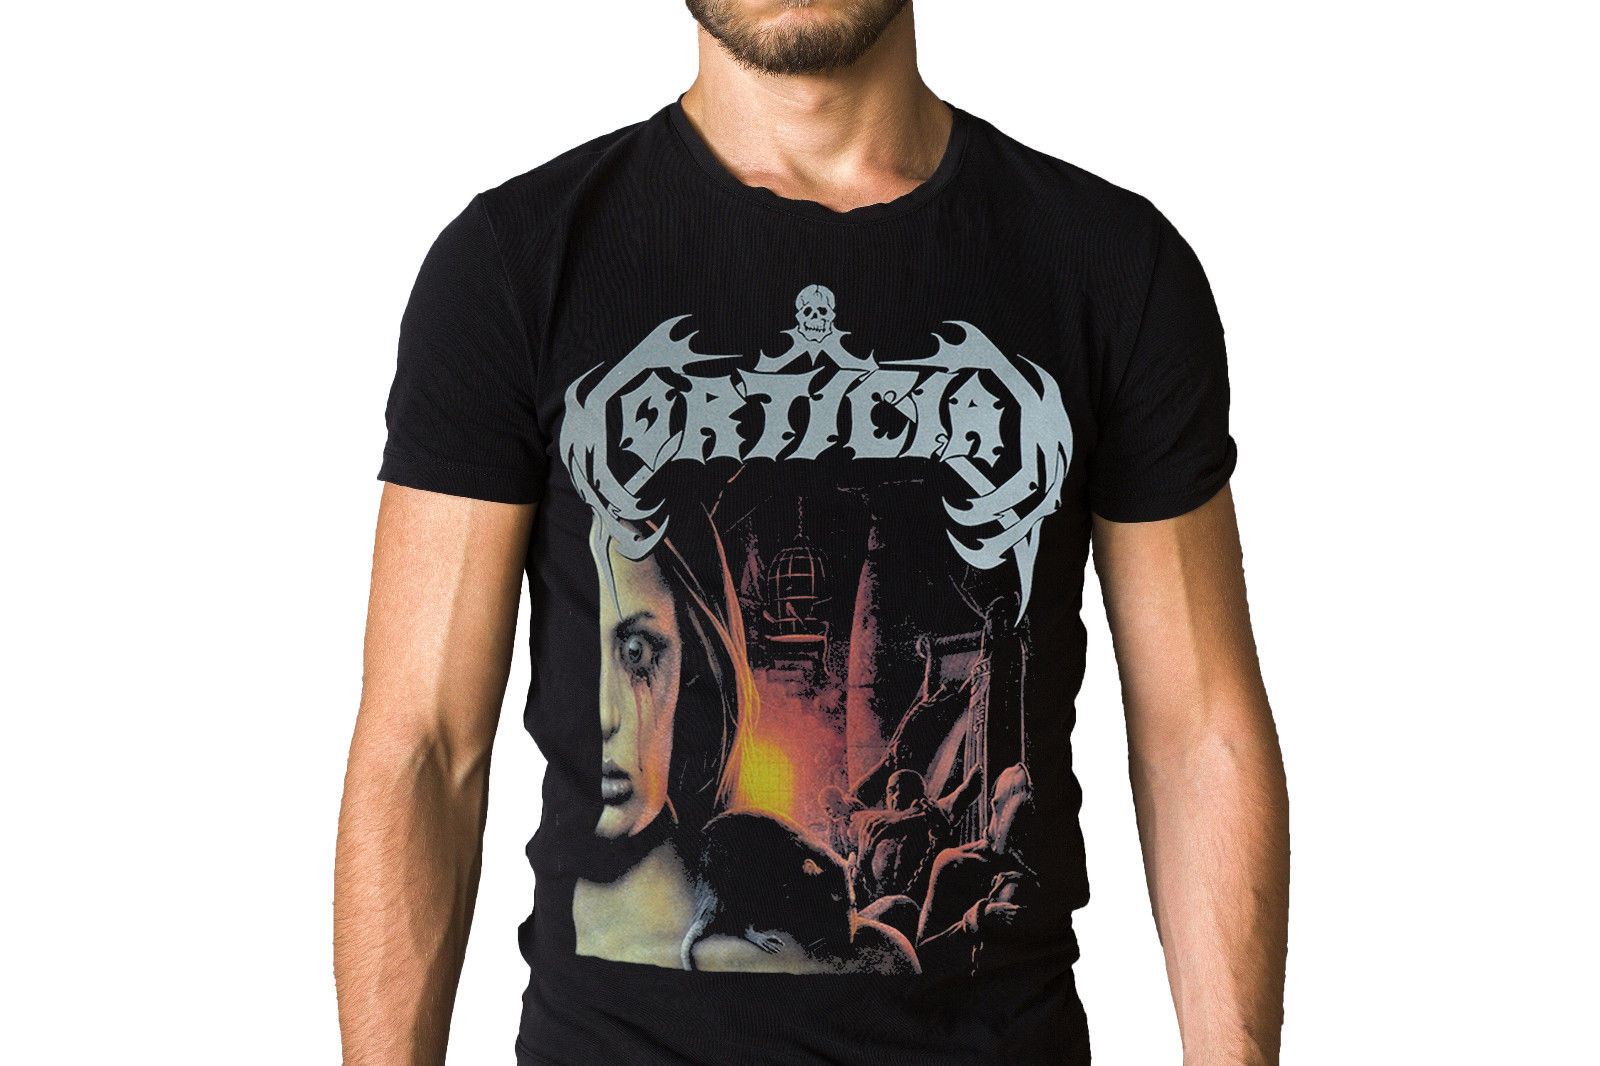 Mortician Domain Of Death 2001 Album Cover T Shirt